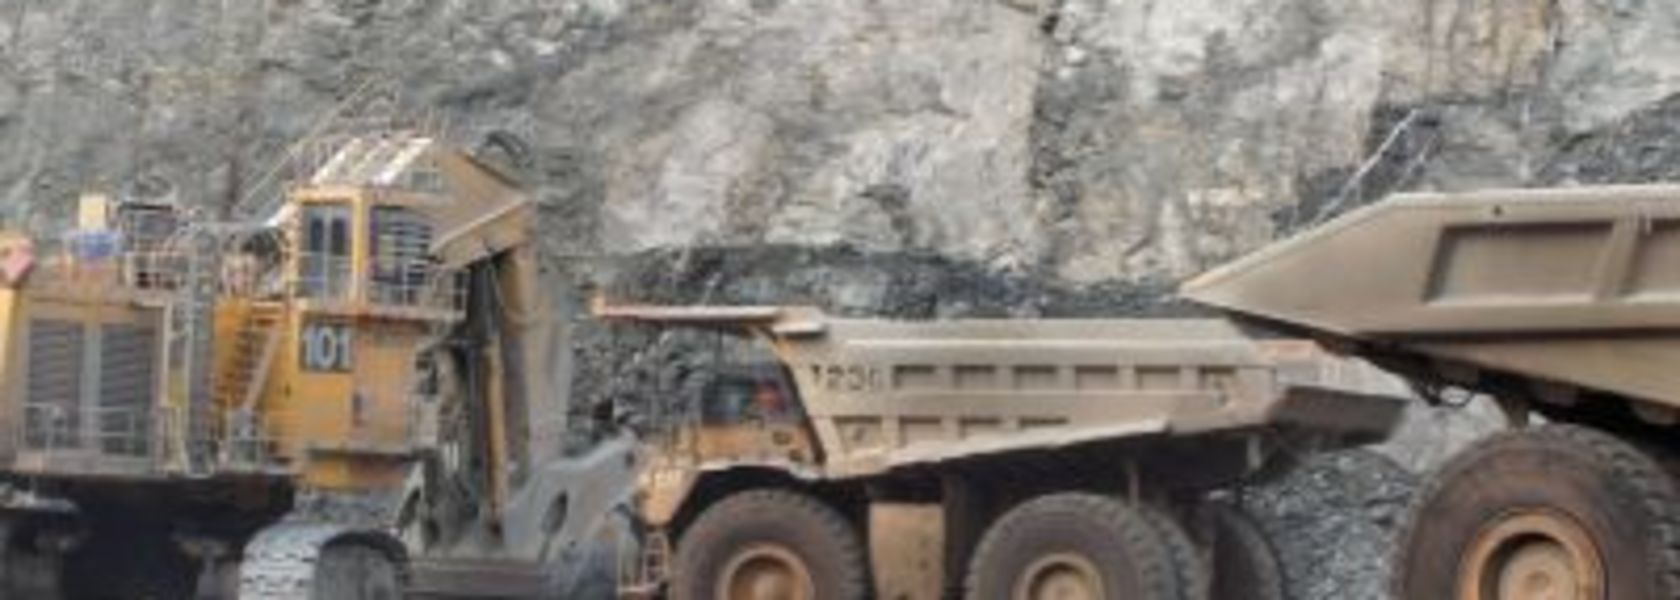 Miners must treat cost-cutting carefully